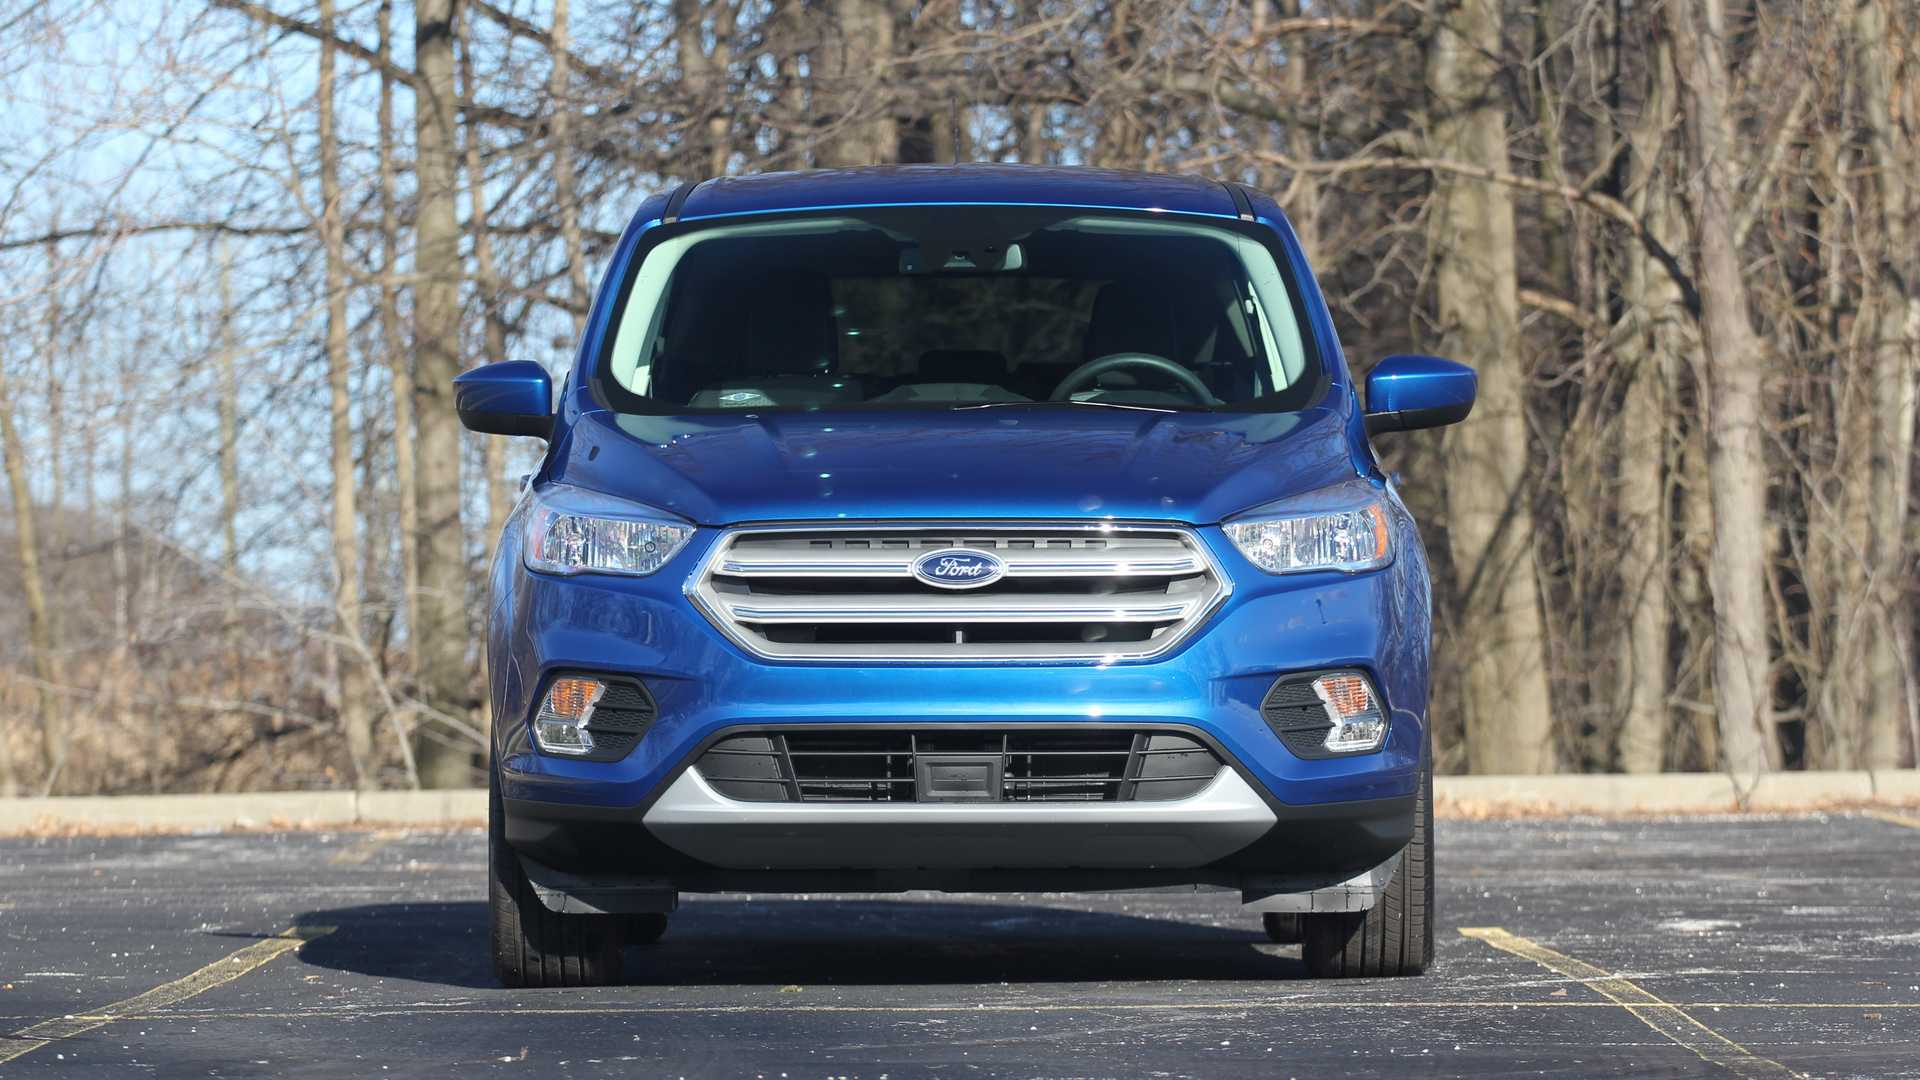 Ford Escape Discount Slashes Up To $4,750 This November